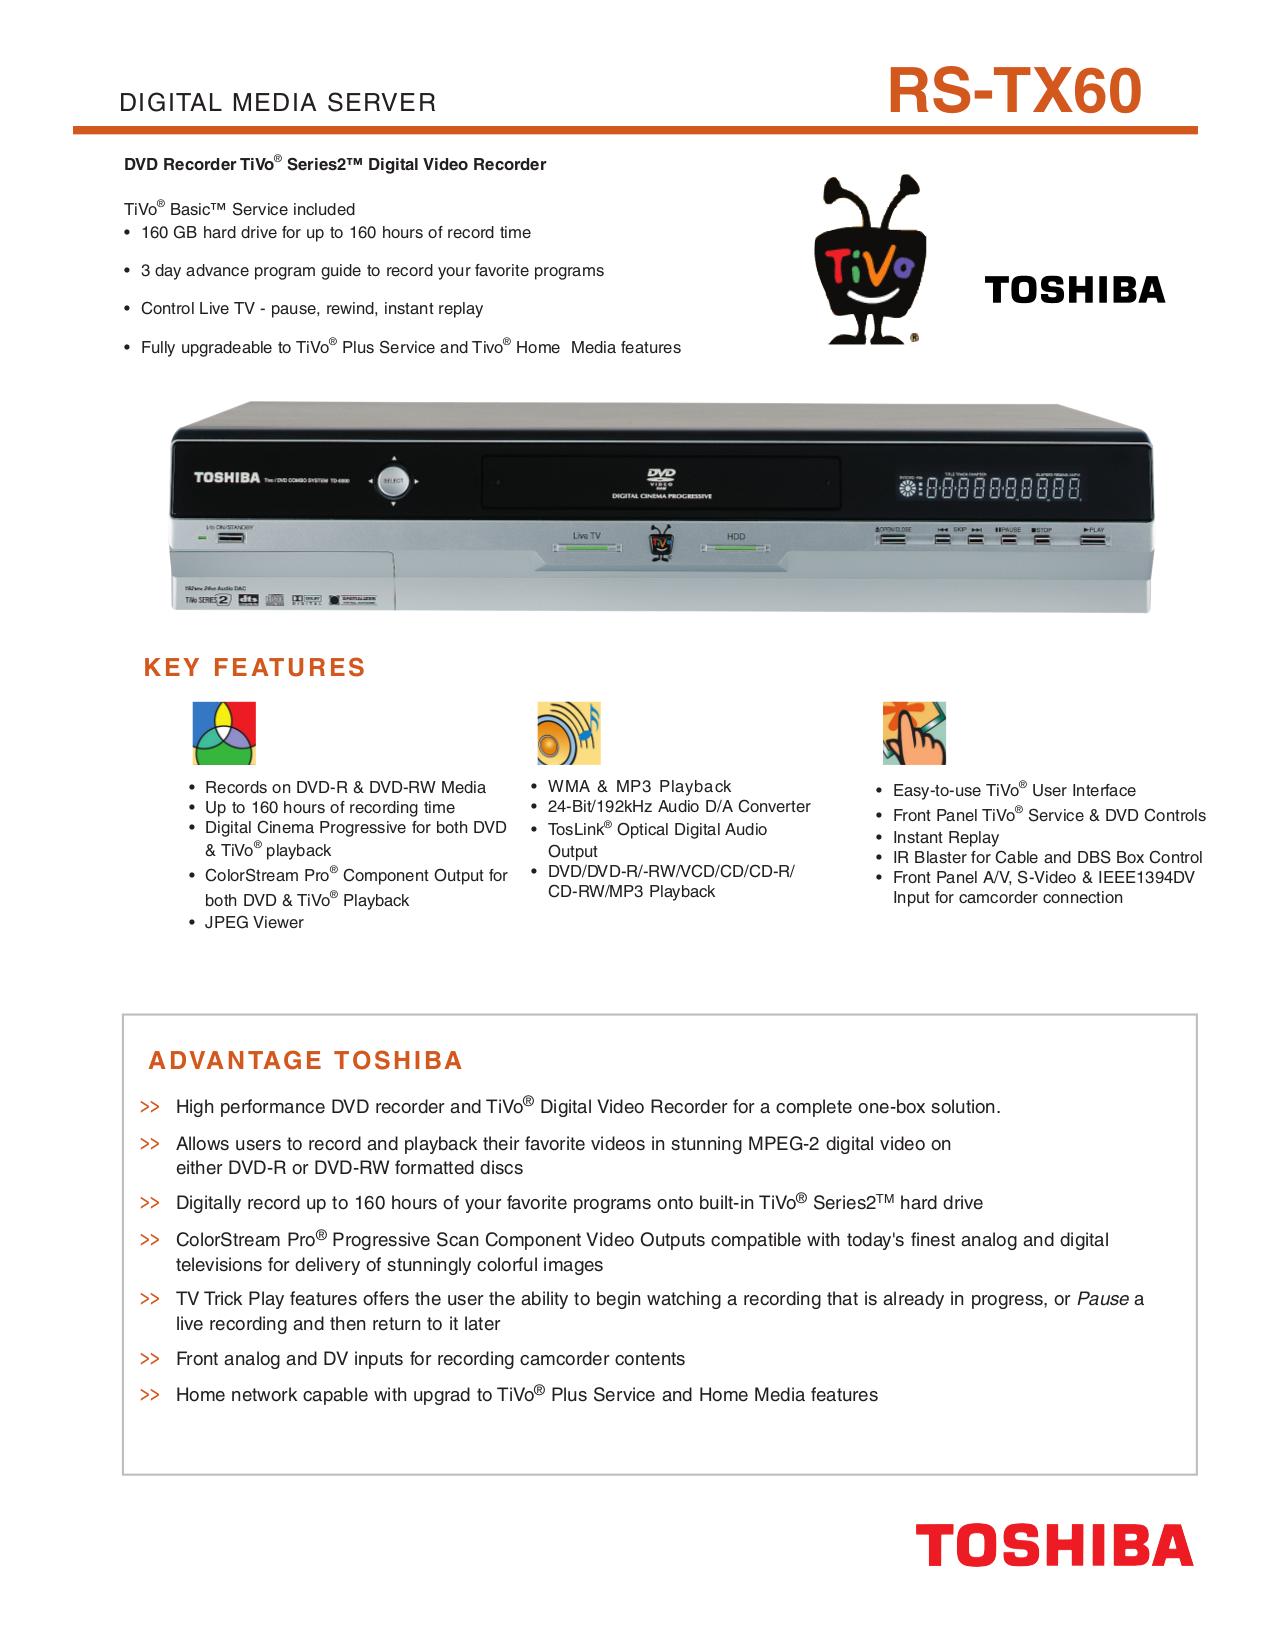 pdf for Toshiba DVR RS-TX60 manual